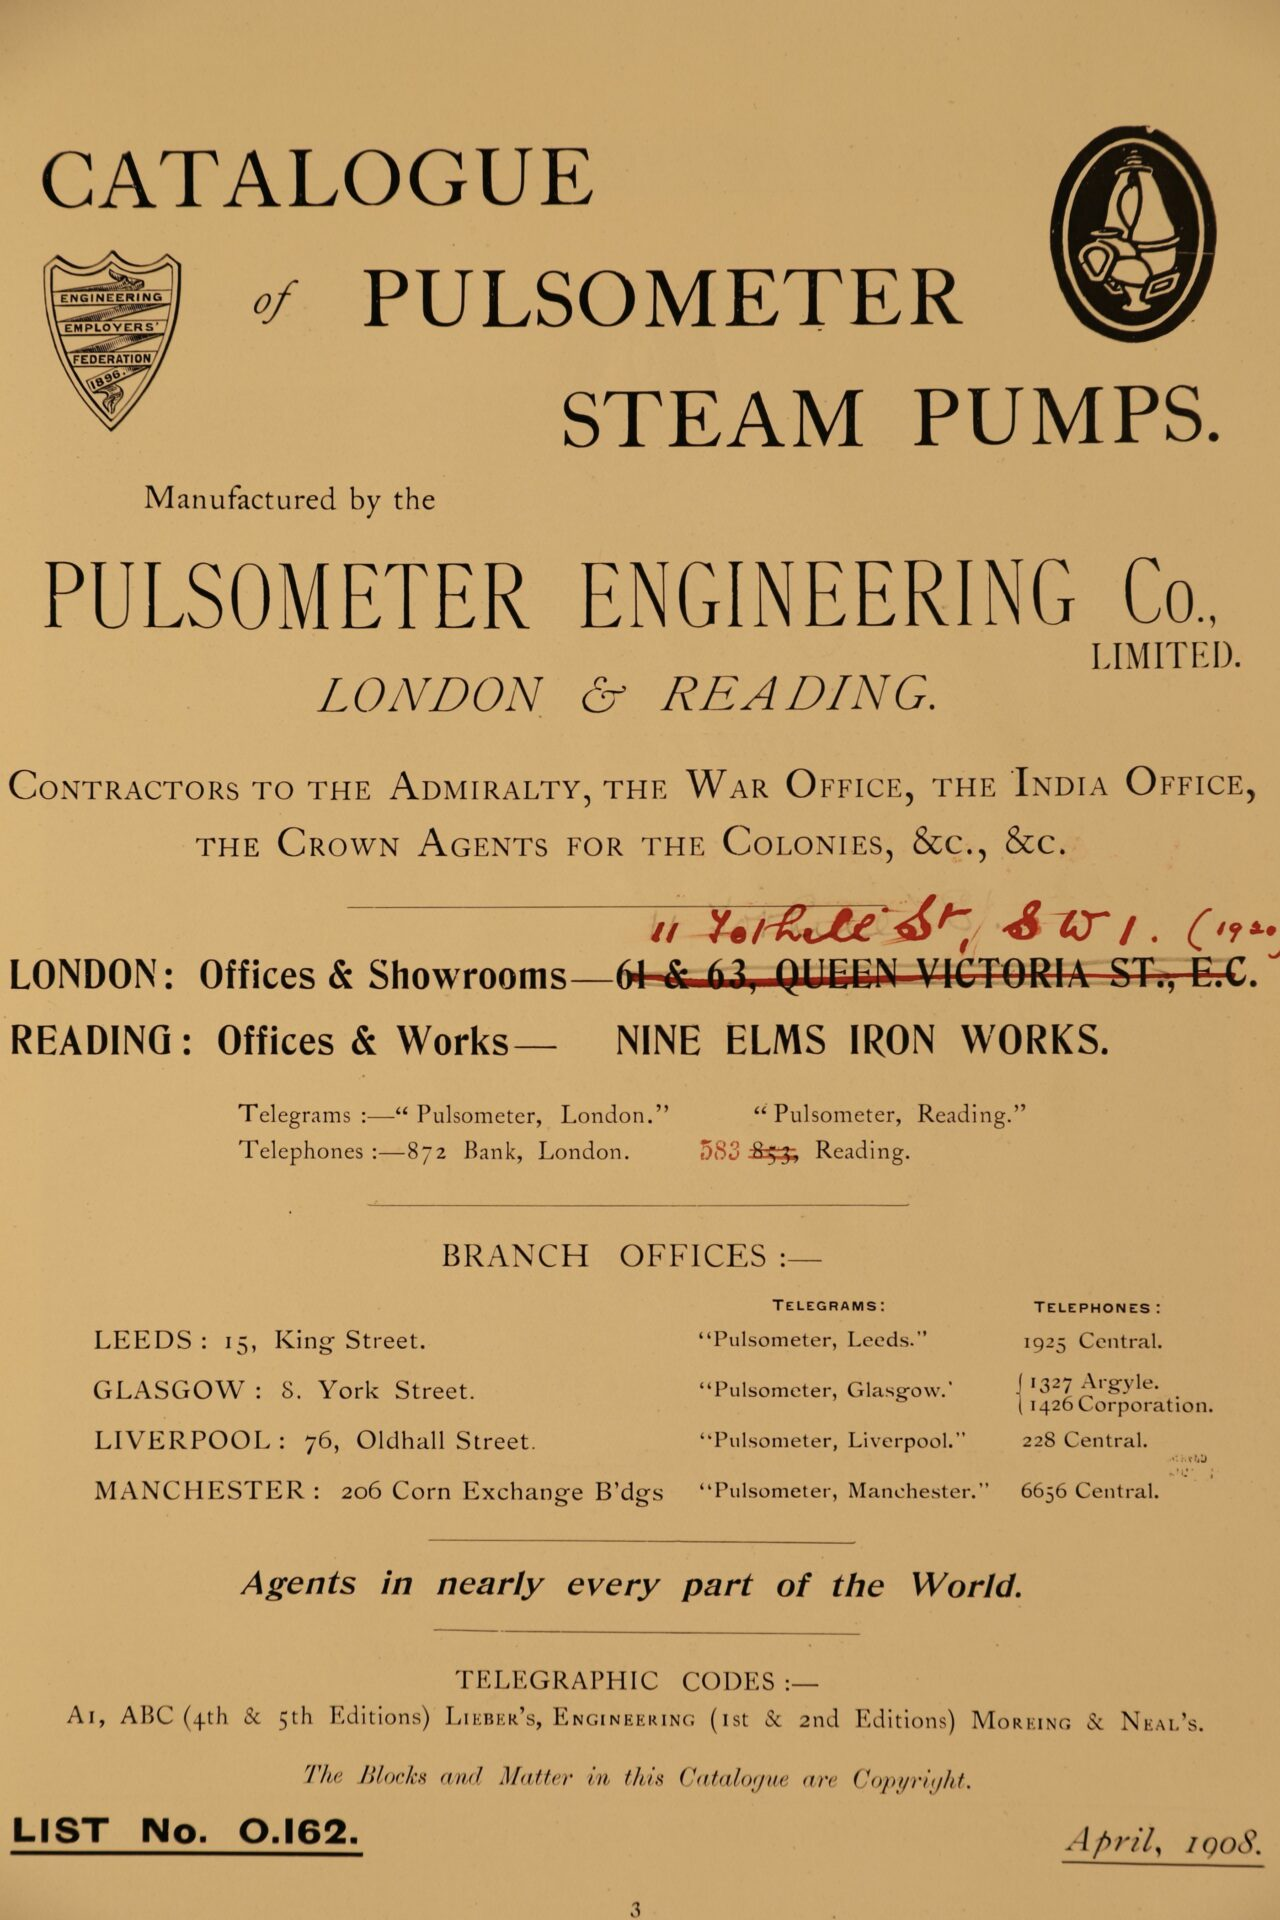 Image of page 3 from Pulsometer Steam Pumps Catalogue 1908